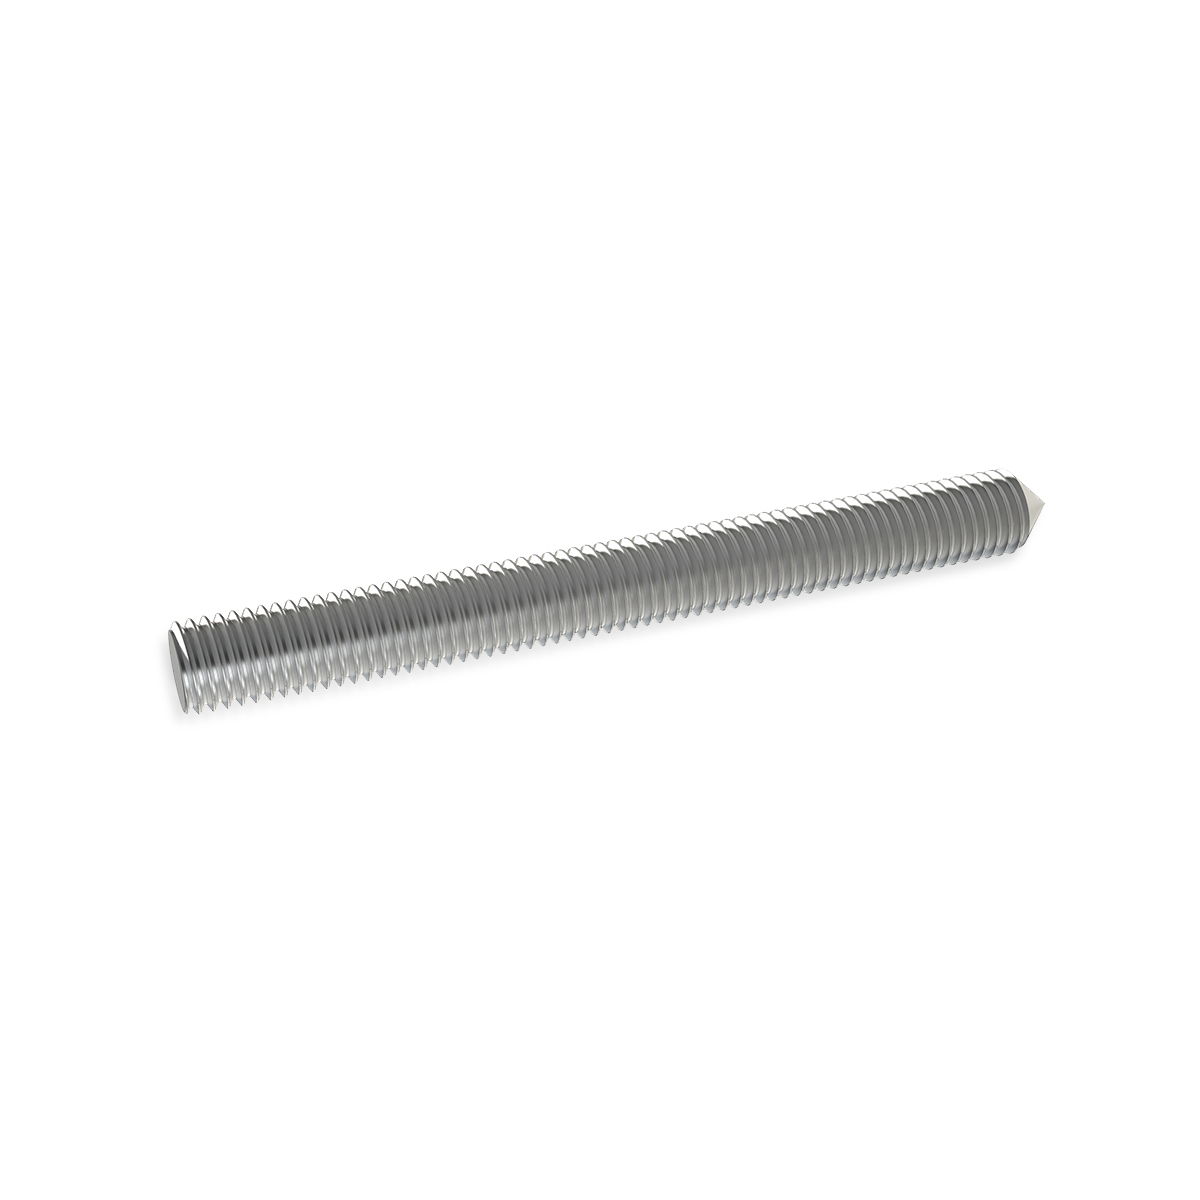 3/16'' Diameter X 6'' Long, Aluminum 10-24 Threaded Stud (1 End Flat - 1 End Conical)